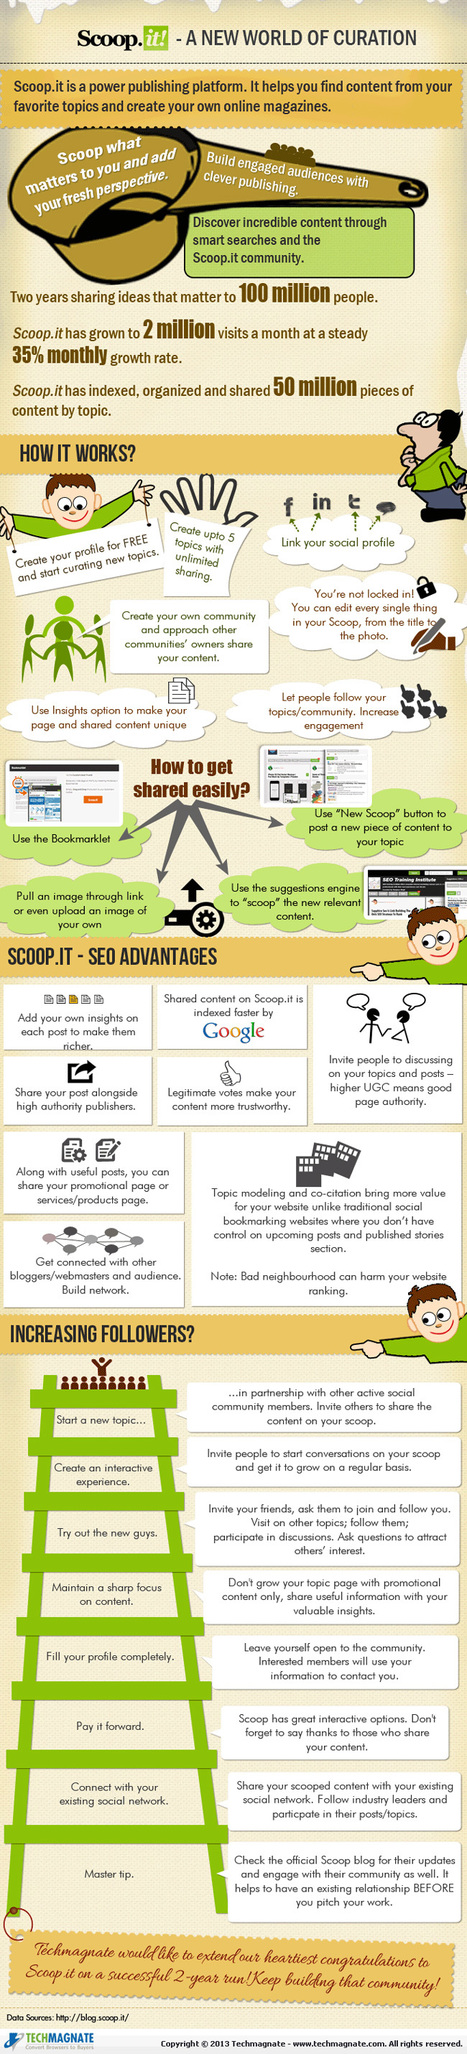 Scoop.It for SEO – A New World of Curation [Infographic] | Create, Innovate & Evaluate in Higher Education | Scoop.it